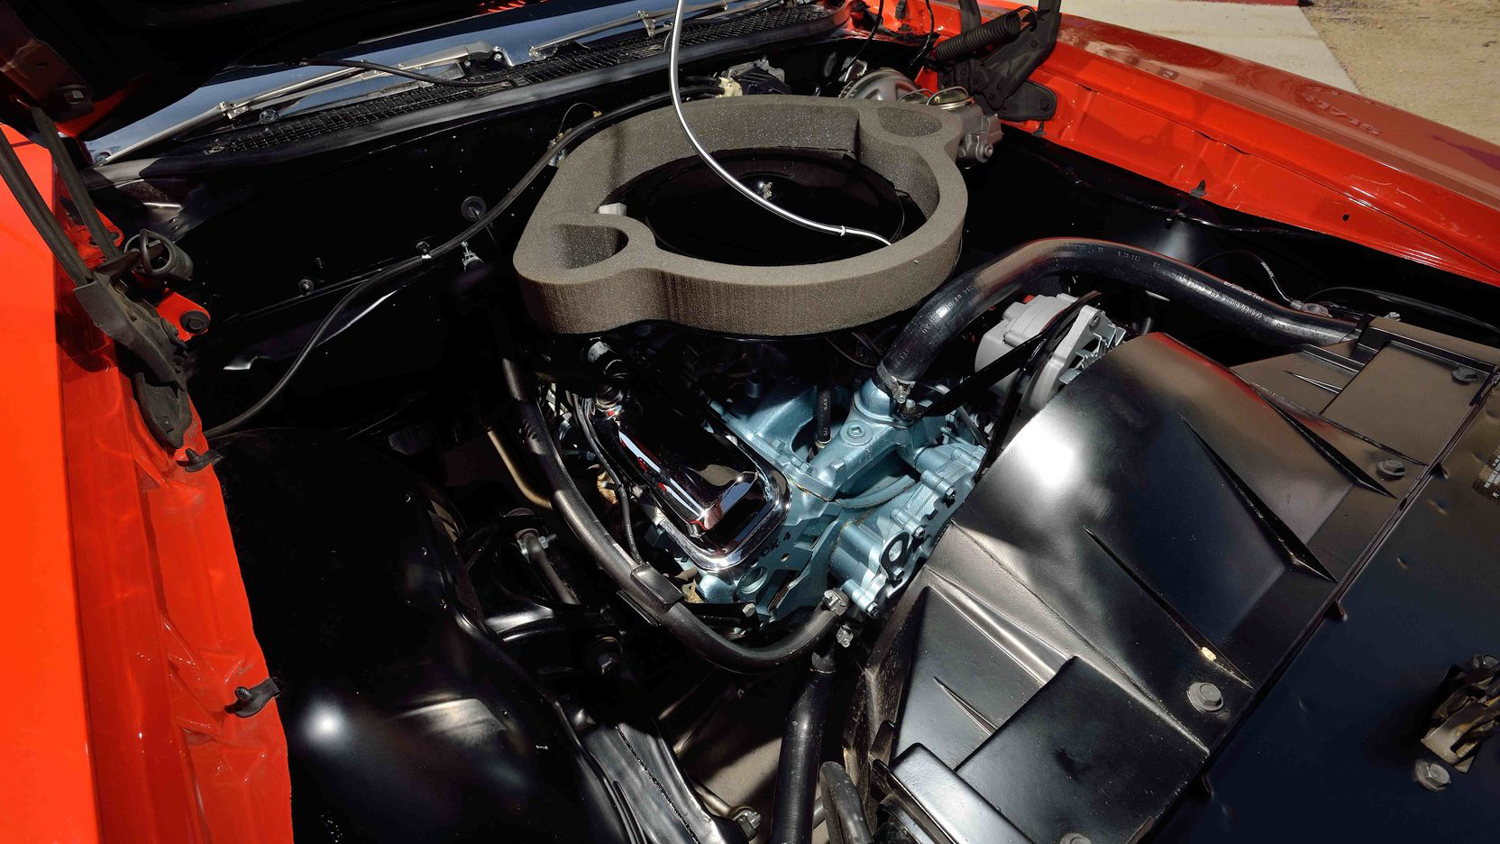 1969 Pontiac GTO Judge engine passenger side